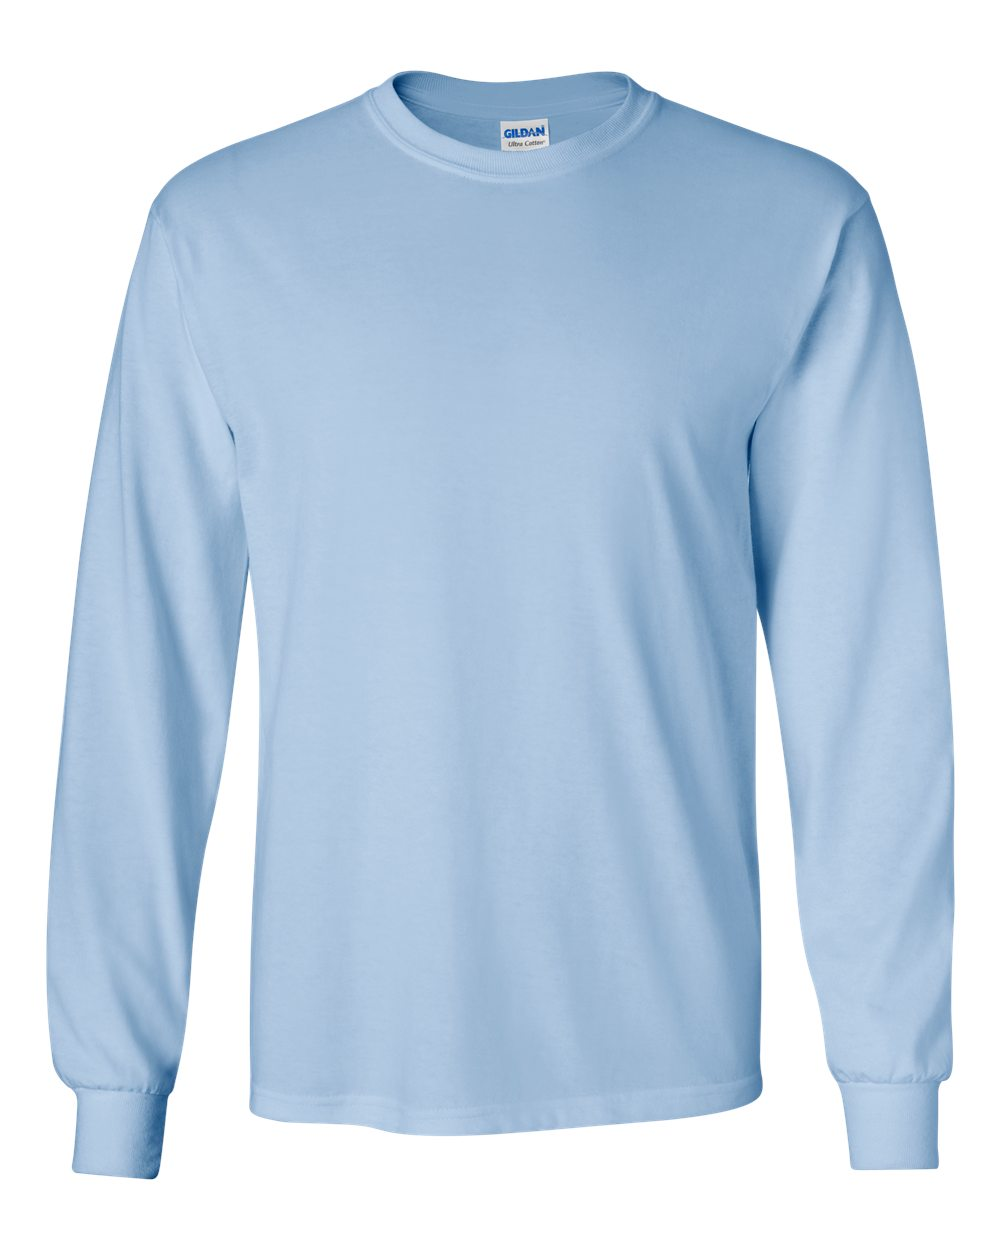 Gildan_2400_Light_Blue_Front_High.jpg